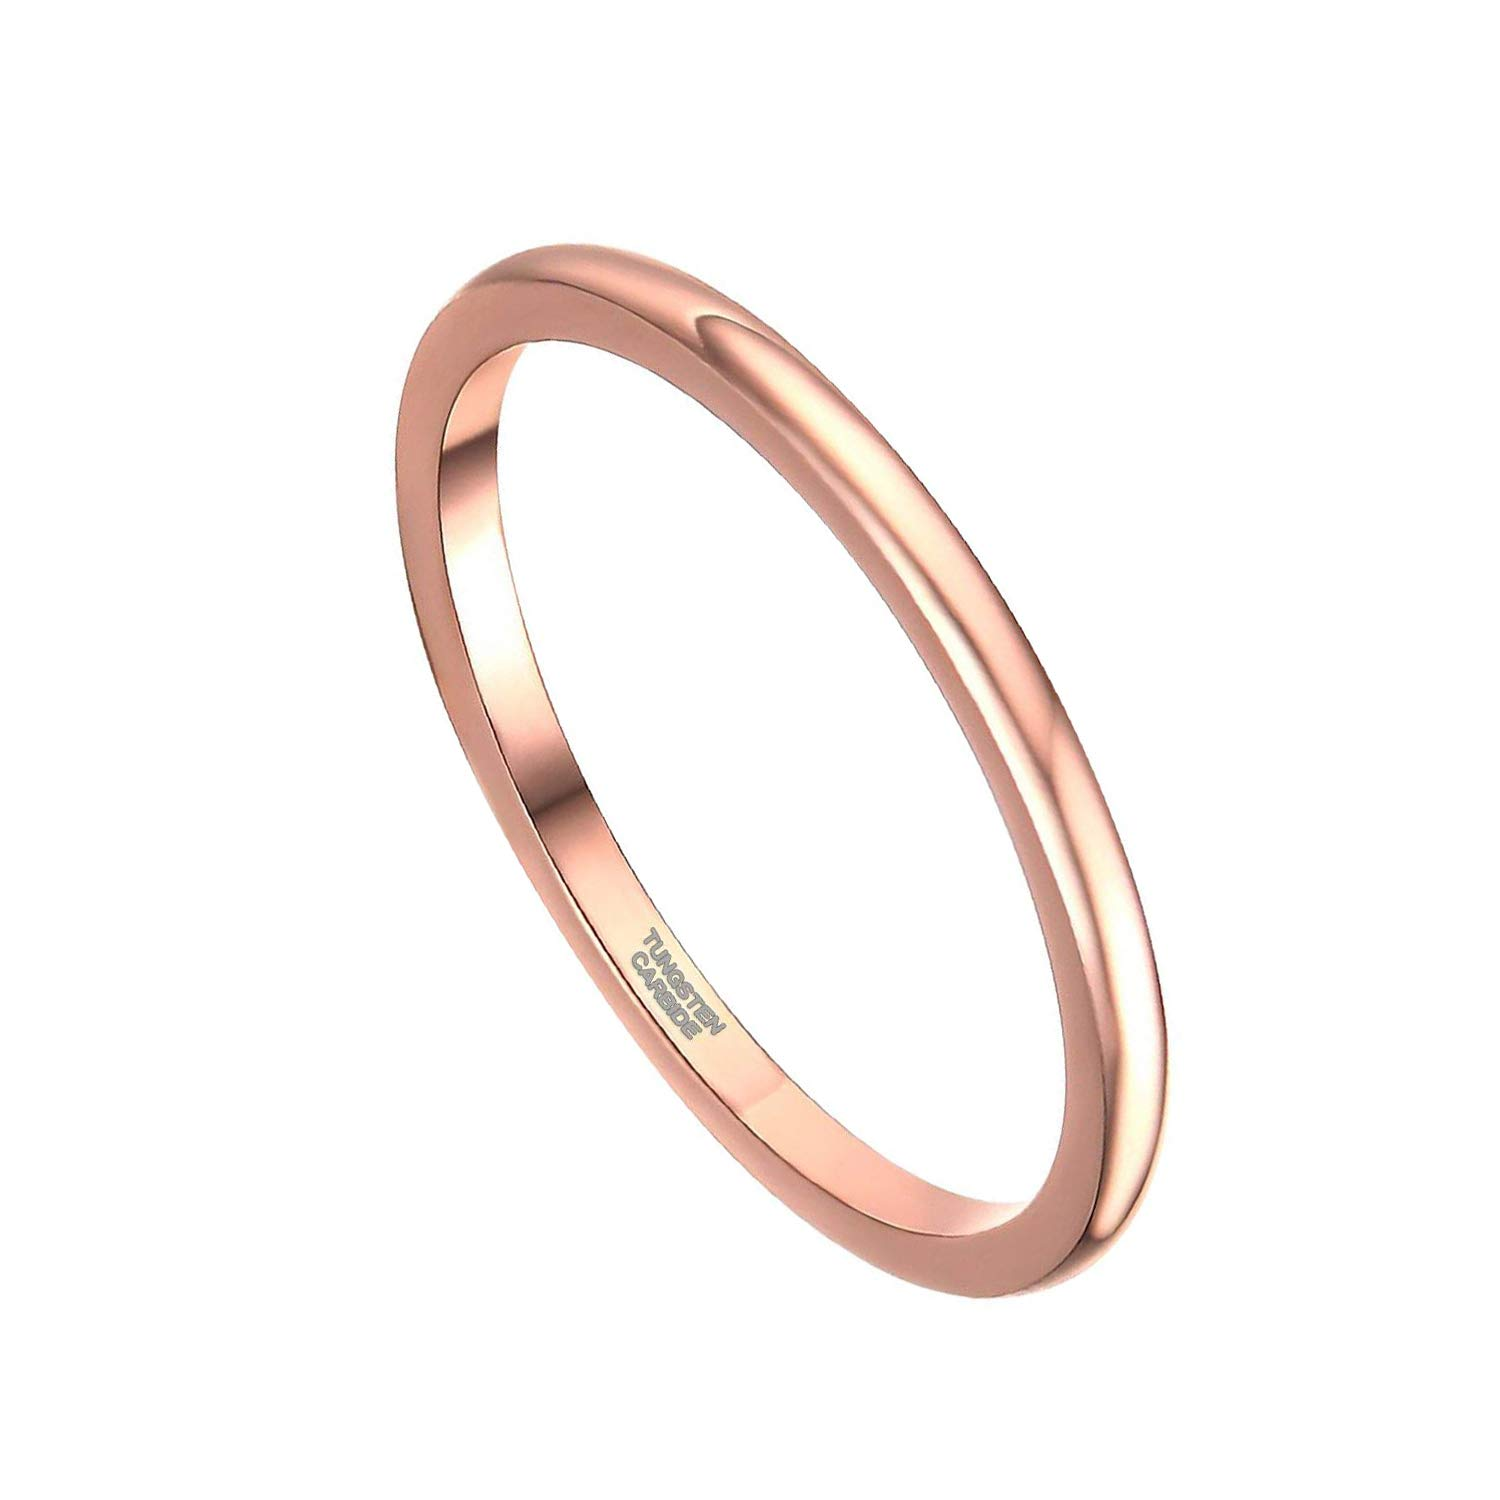 Greenpod 2mm Thin Tungsten Wedding Bands for Women Rose Gold Slim Domed Engagement Promise Ring Comfort Fit Size 8